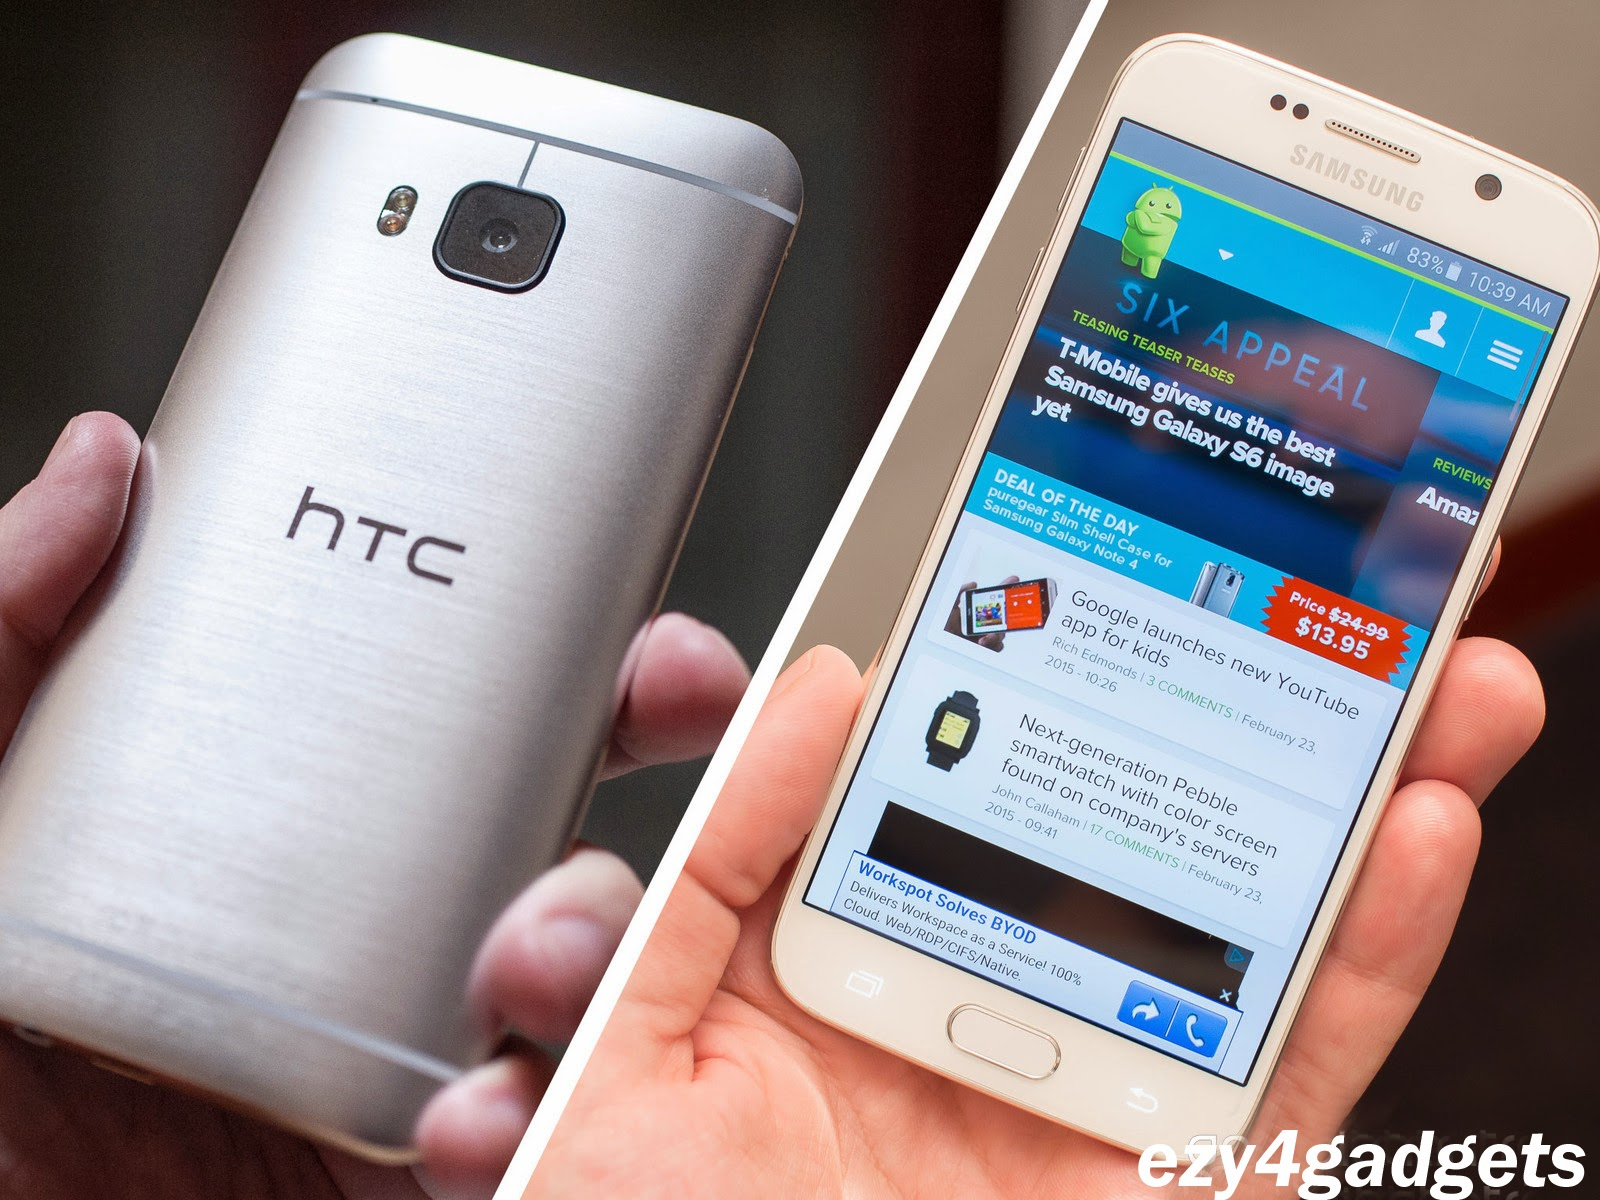 Samsung Galaxy S6 Edge rather than the HTC One M9 - Ezy4Gadgets